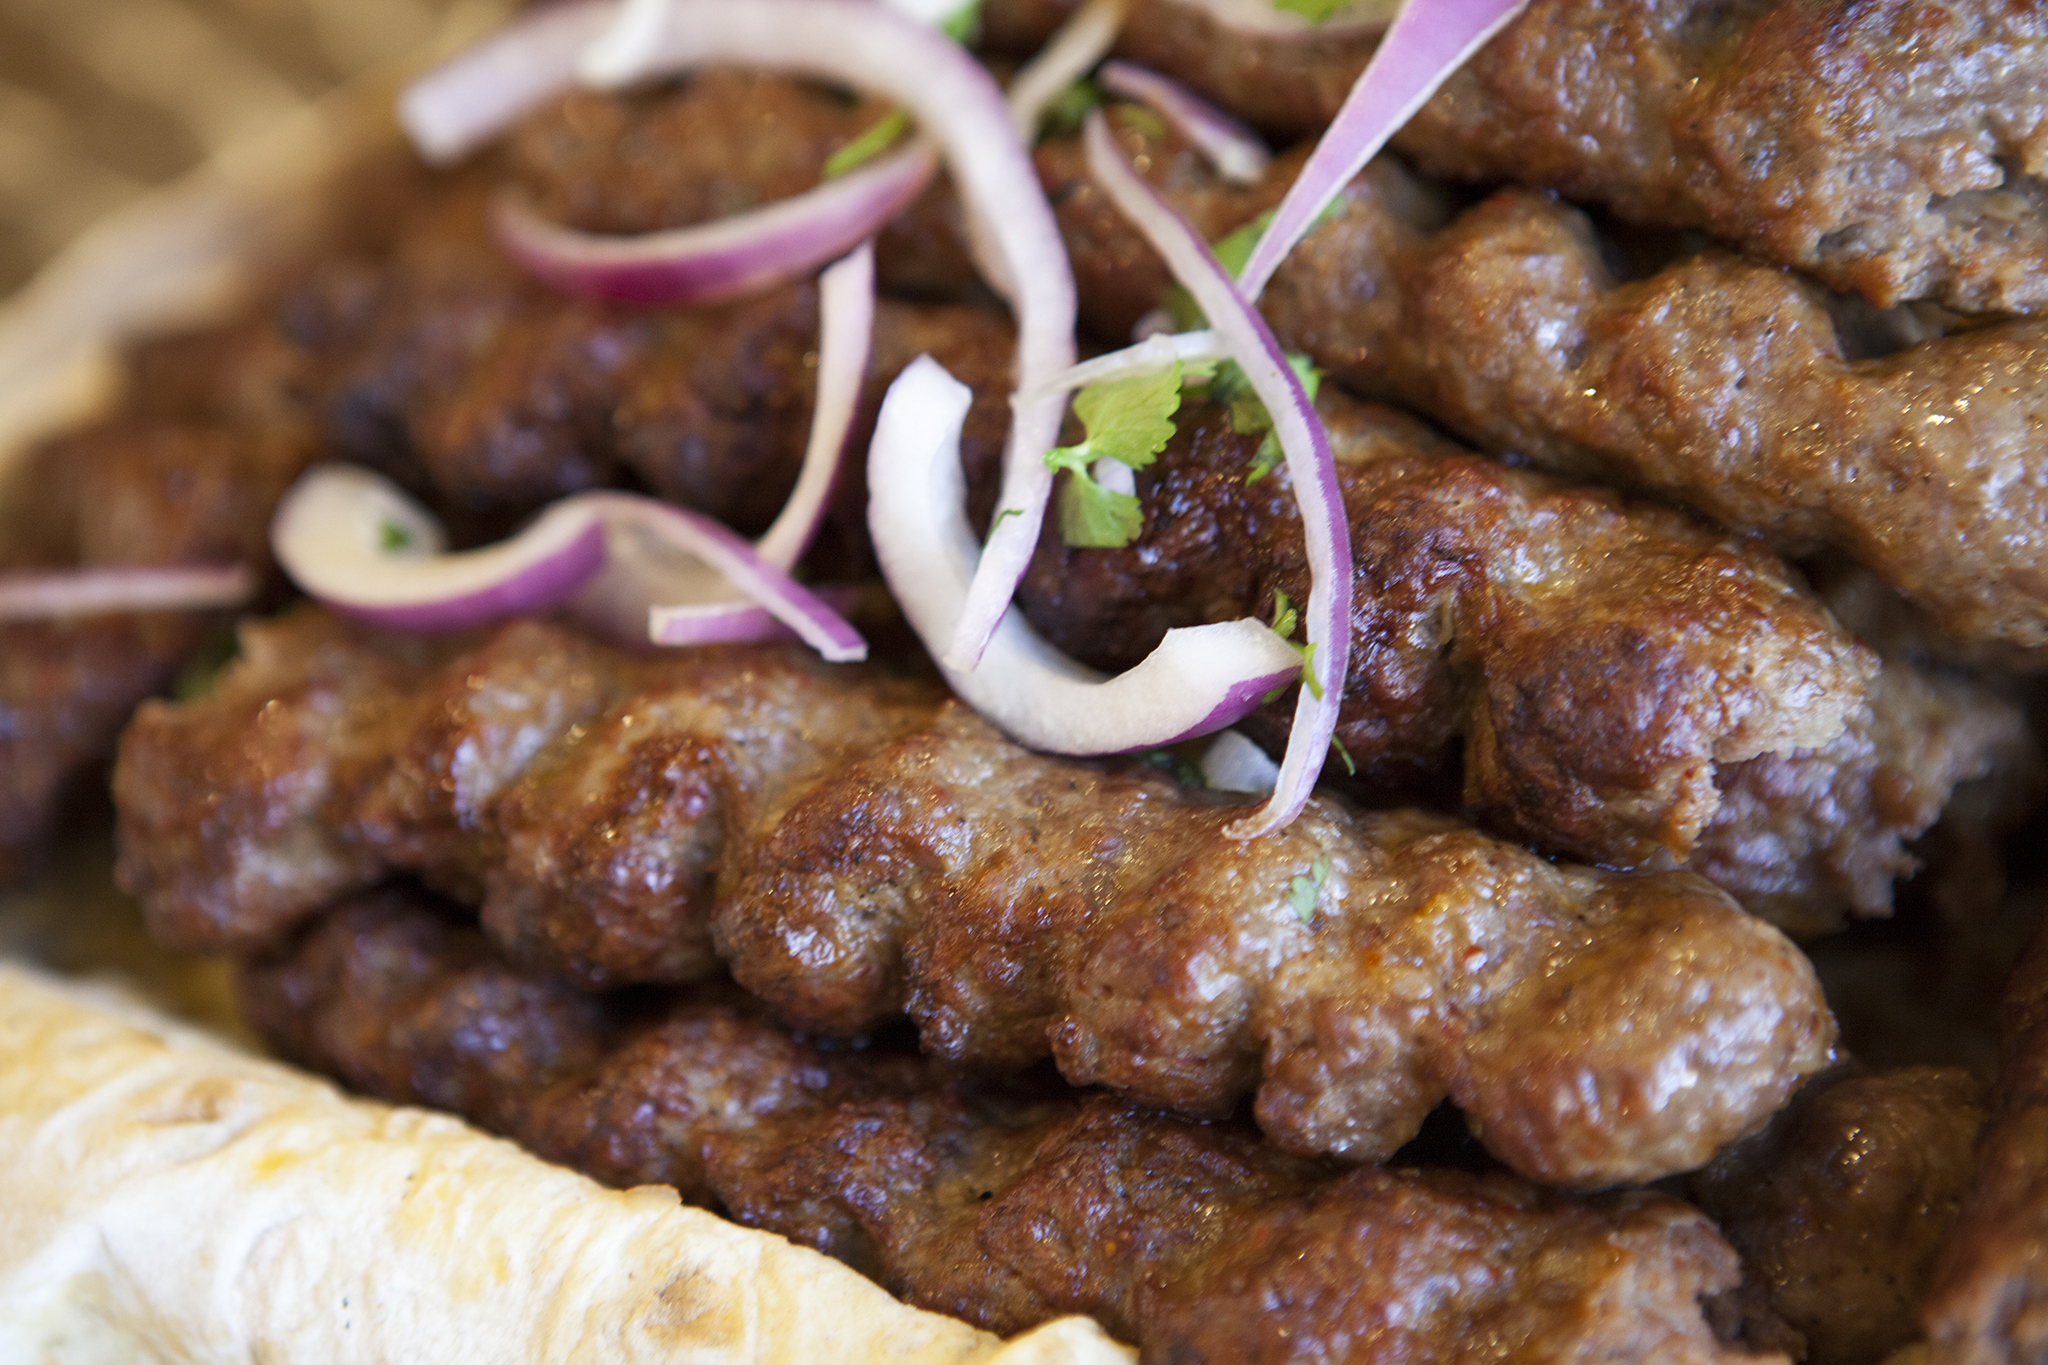 Karabagh Meat Market and Deli's kebabs